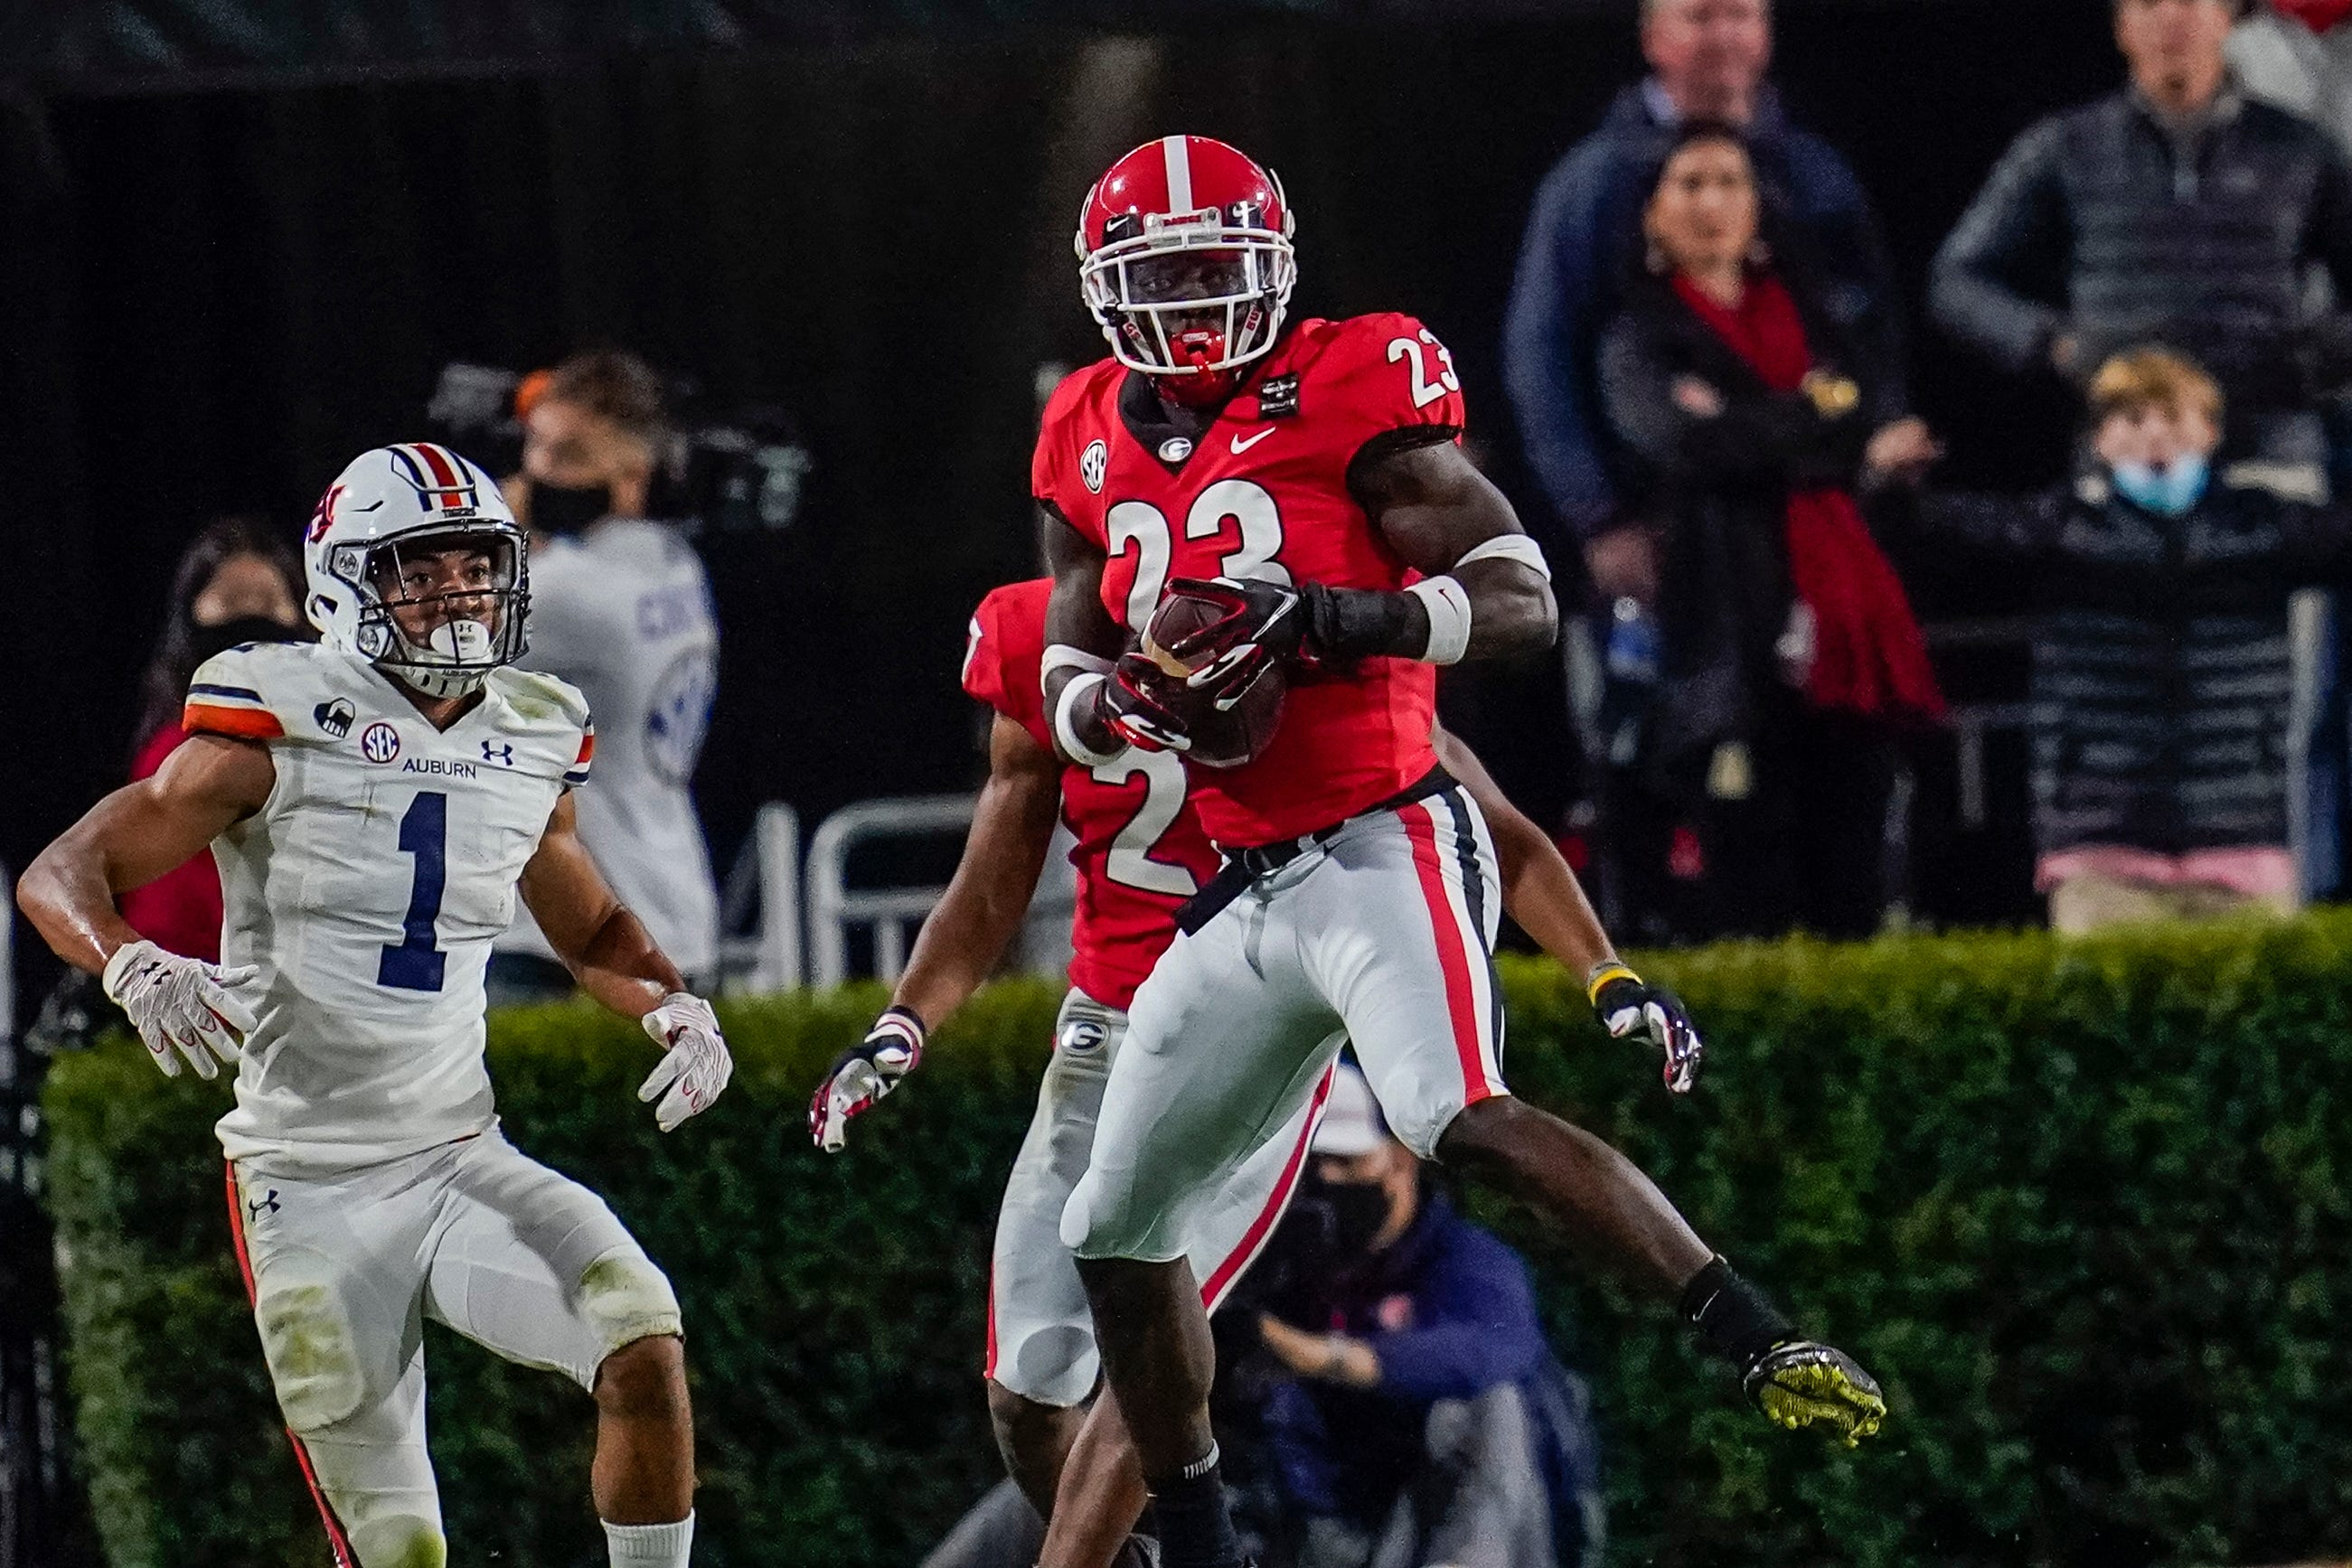 Ranking the SEC teams after Week 5 of the college football season